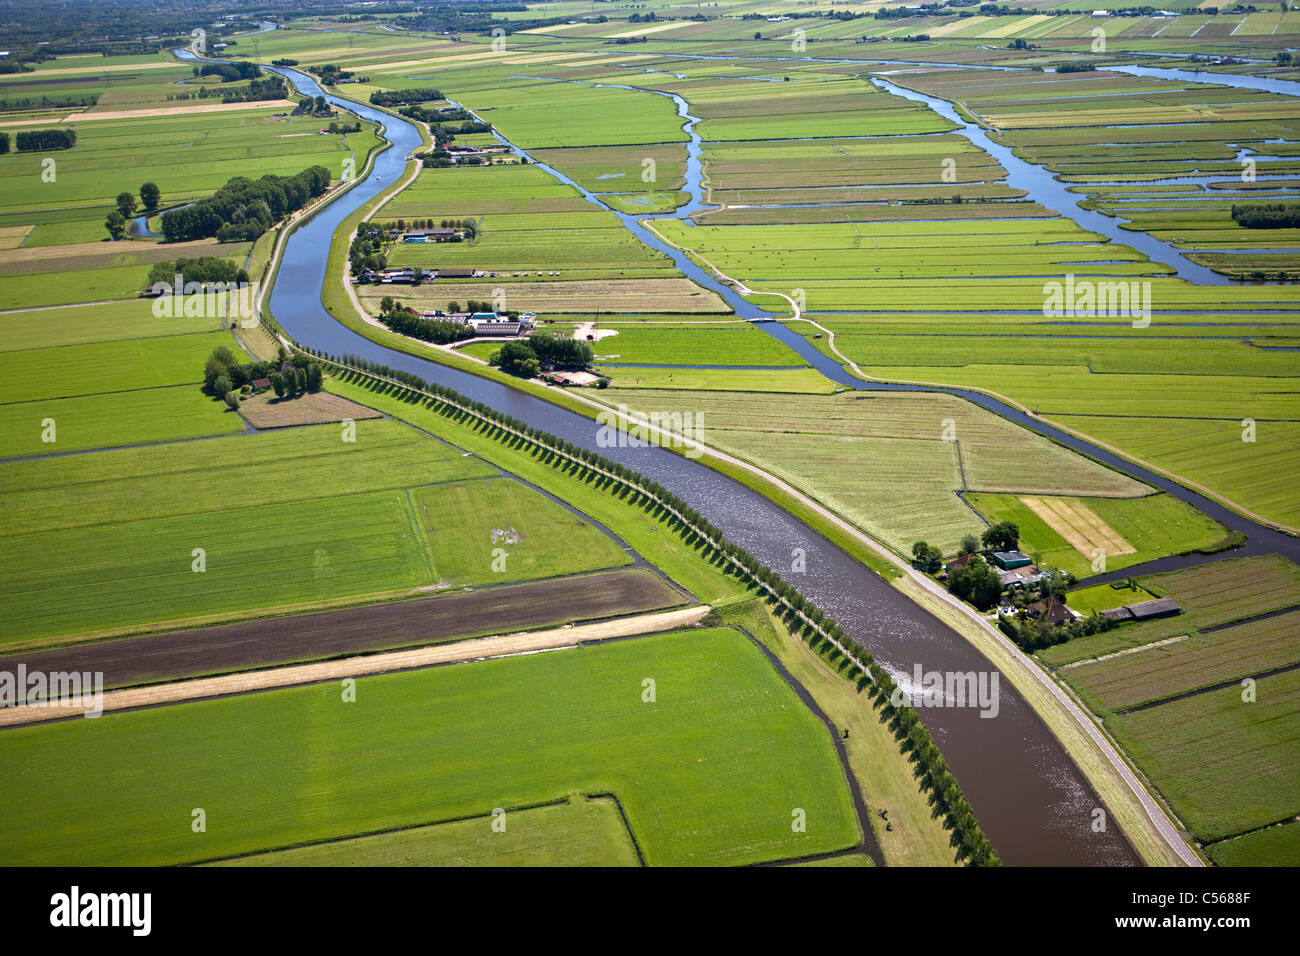 The Netherlands, near De Rijp, Polder with traditional farmland and farms. Belt canal of Beemster polder - Stock Image